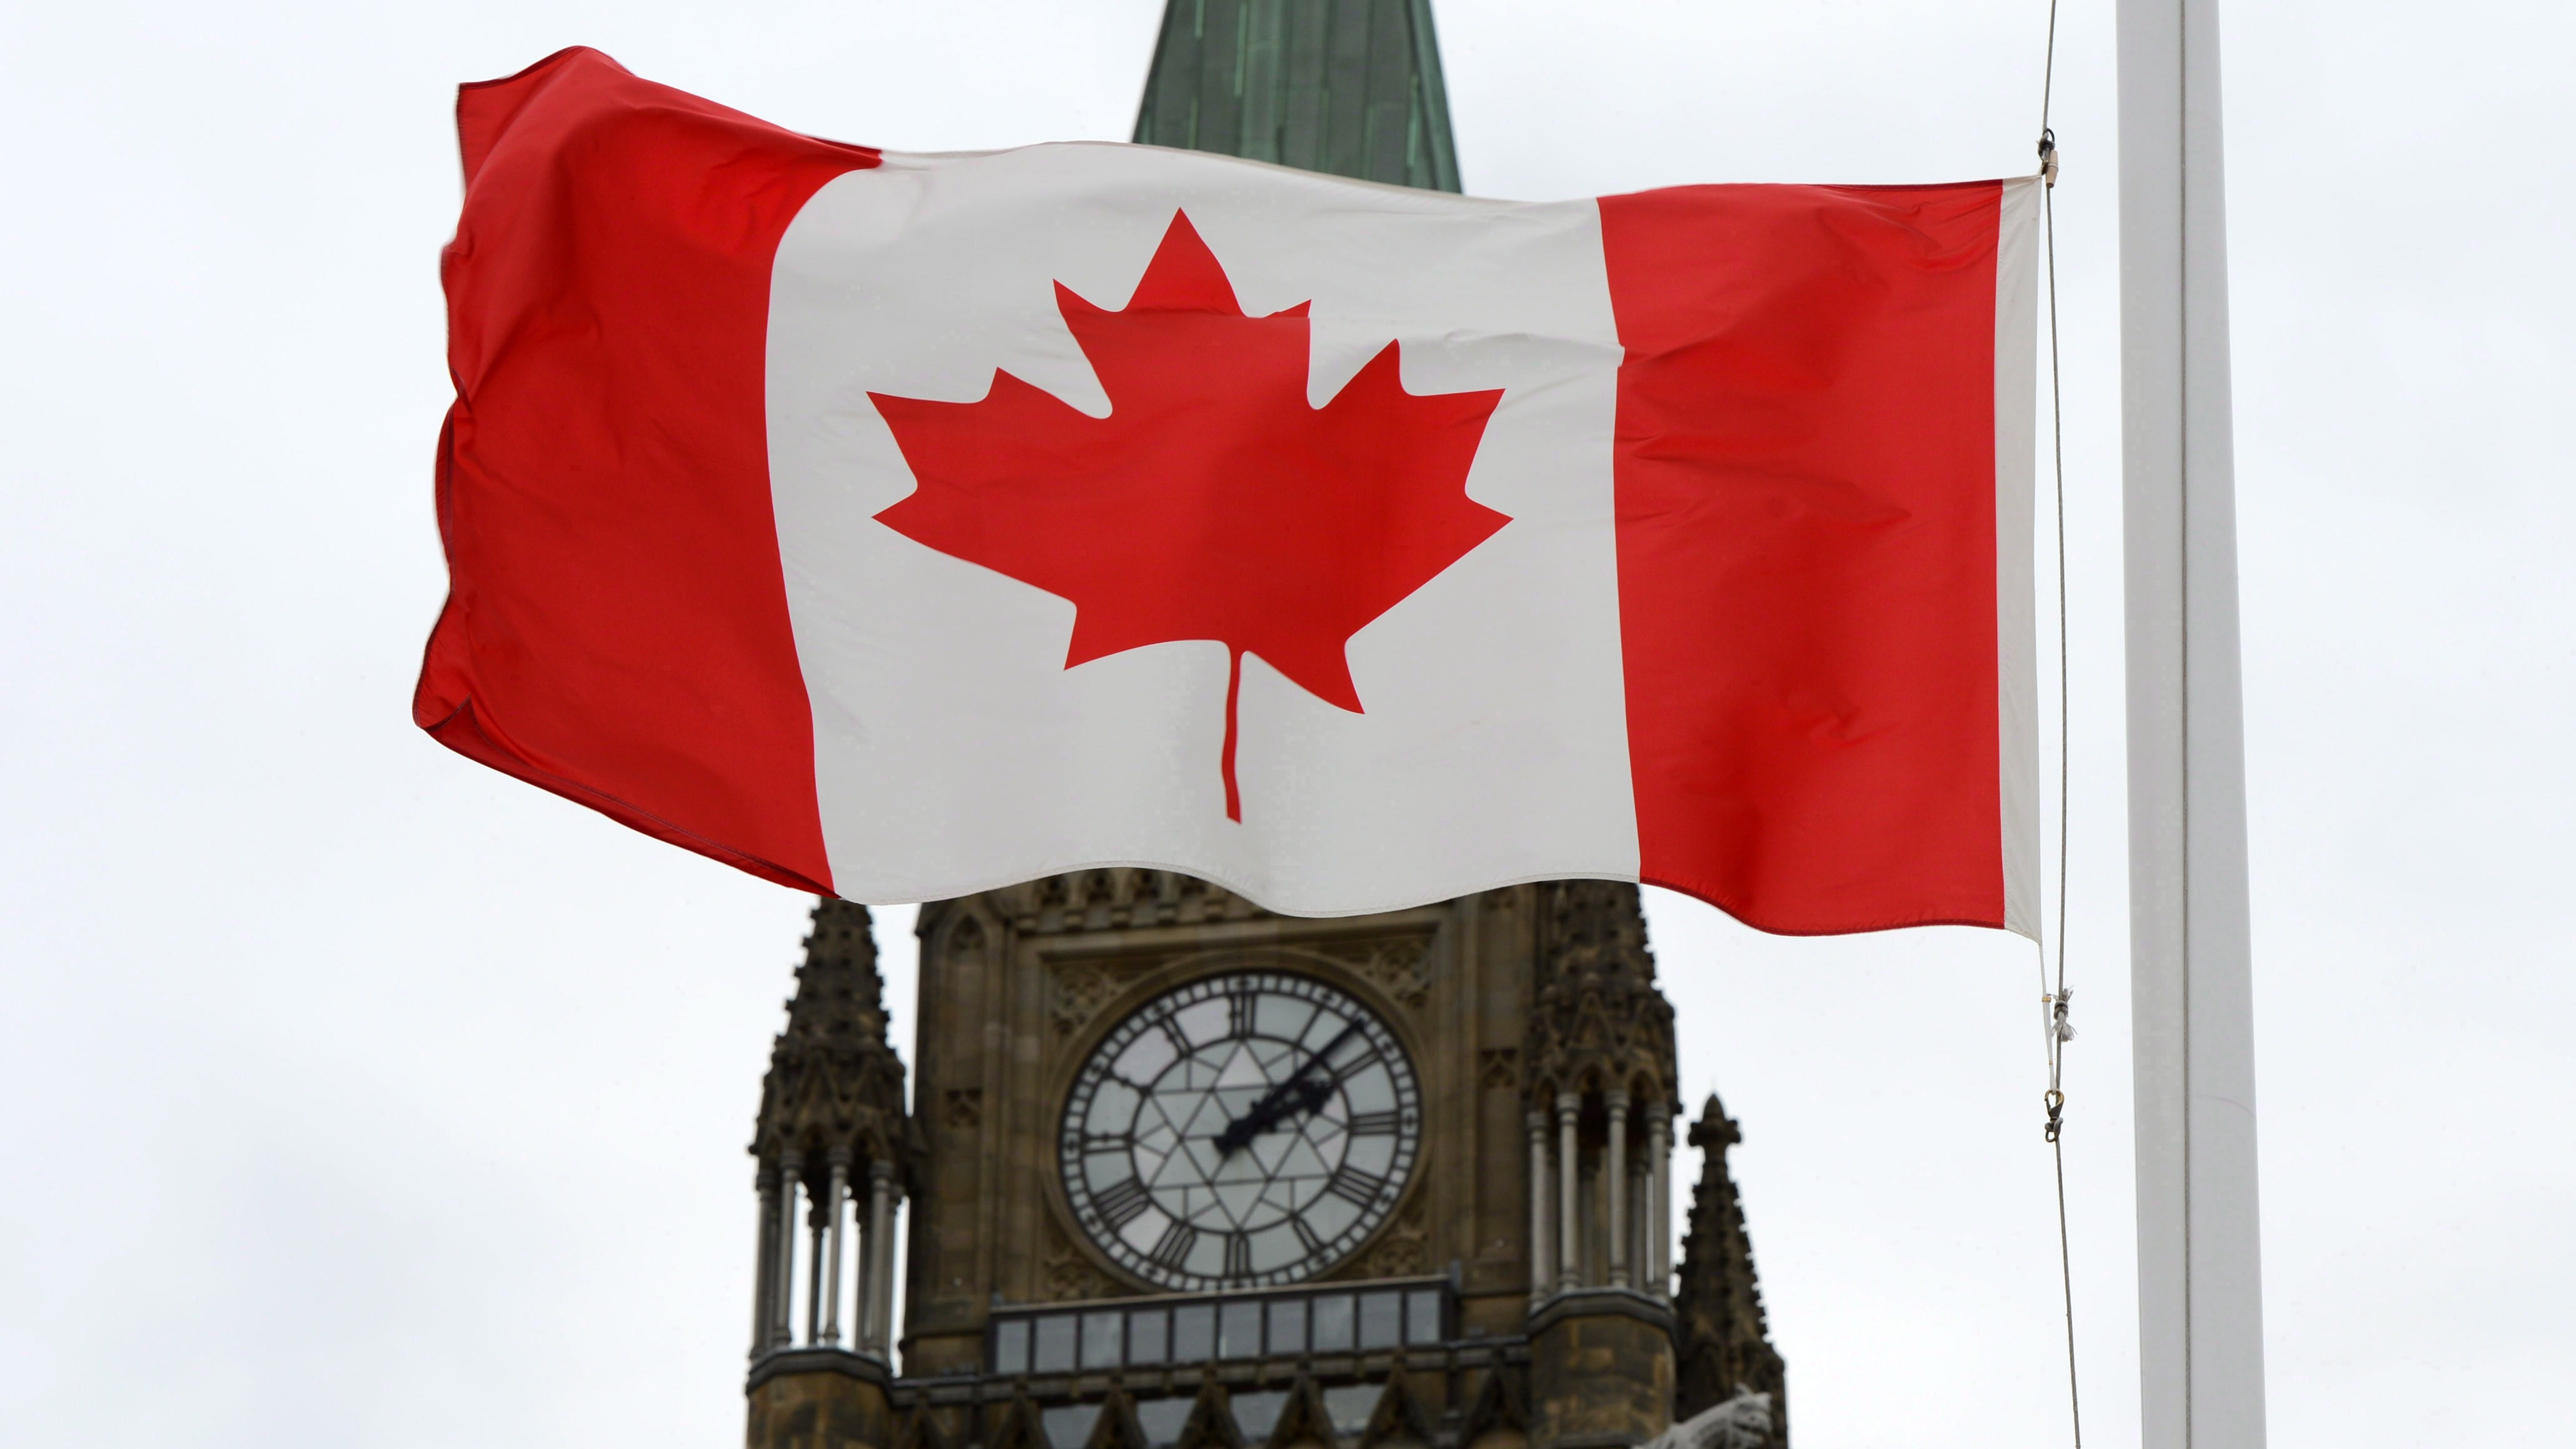 A Canadian flag blows in front of the Peace Tower on Parliament Hill in Ottawa, Oct. 24, 2012. THE CANADIAN PRESS/Sean Kilpatrick